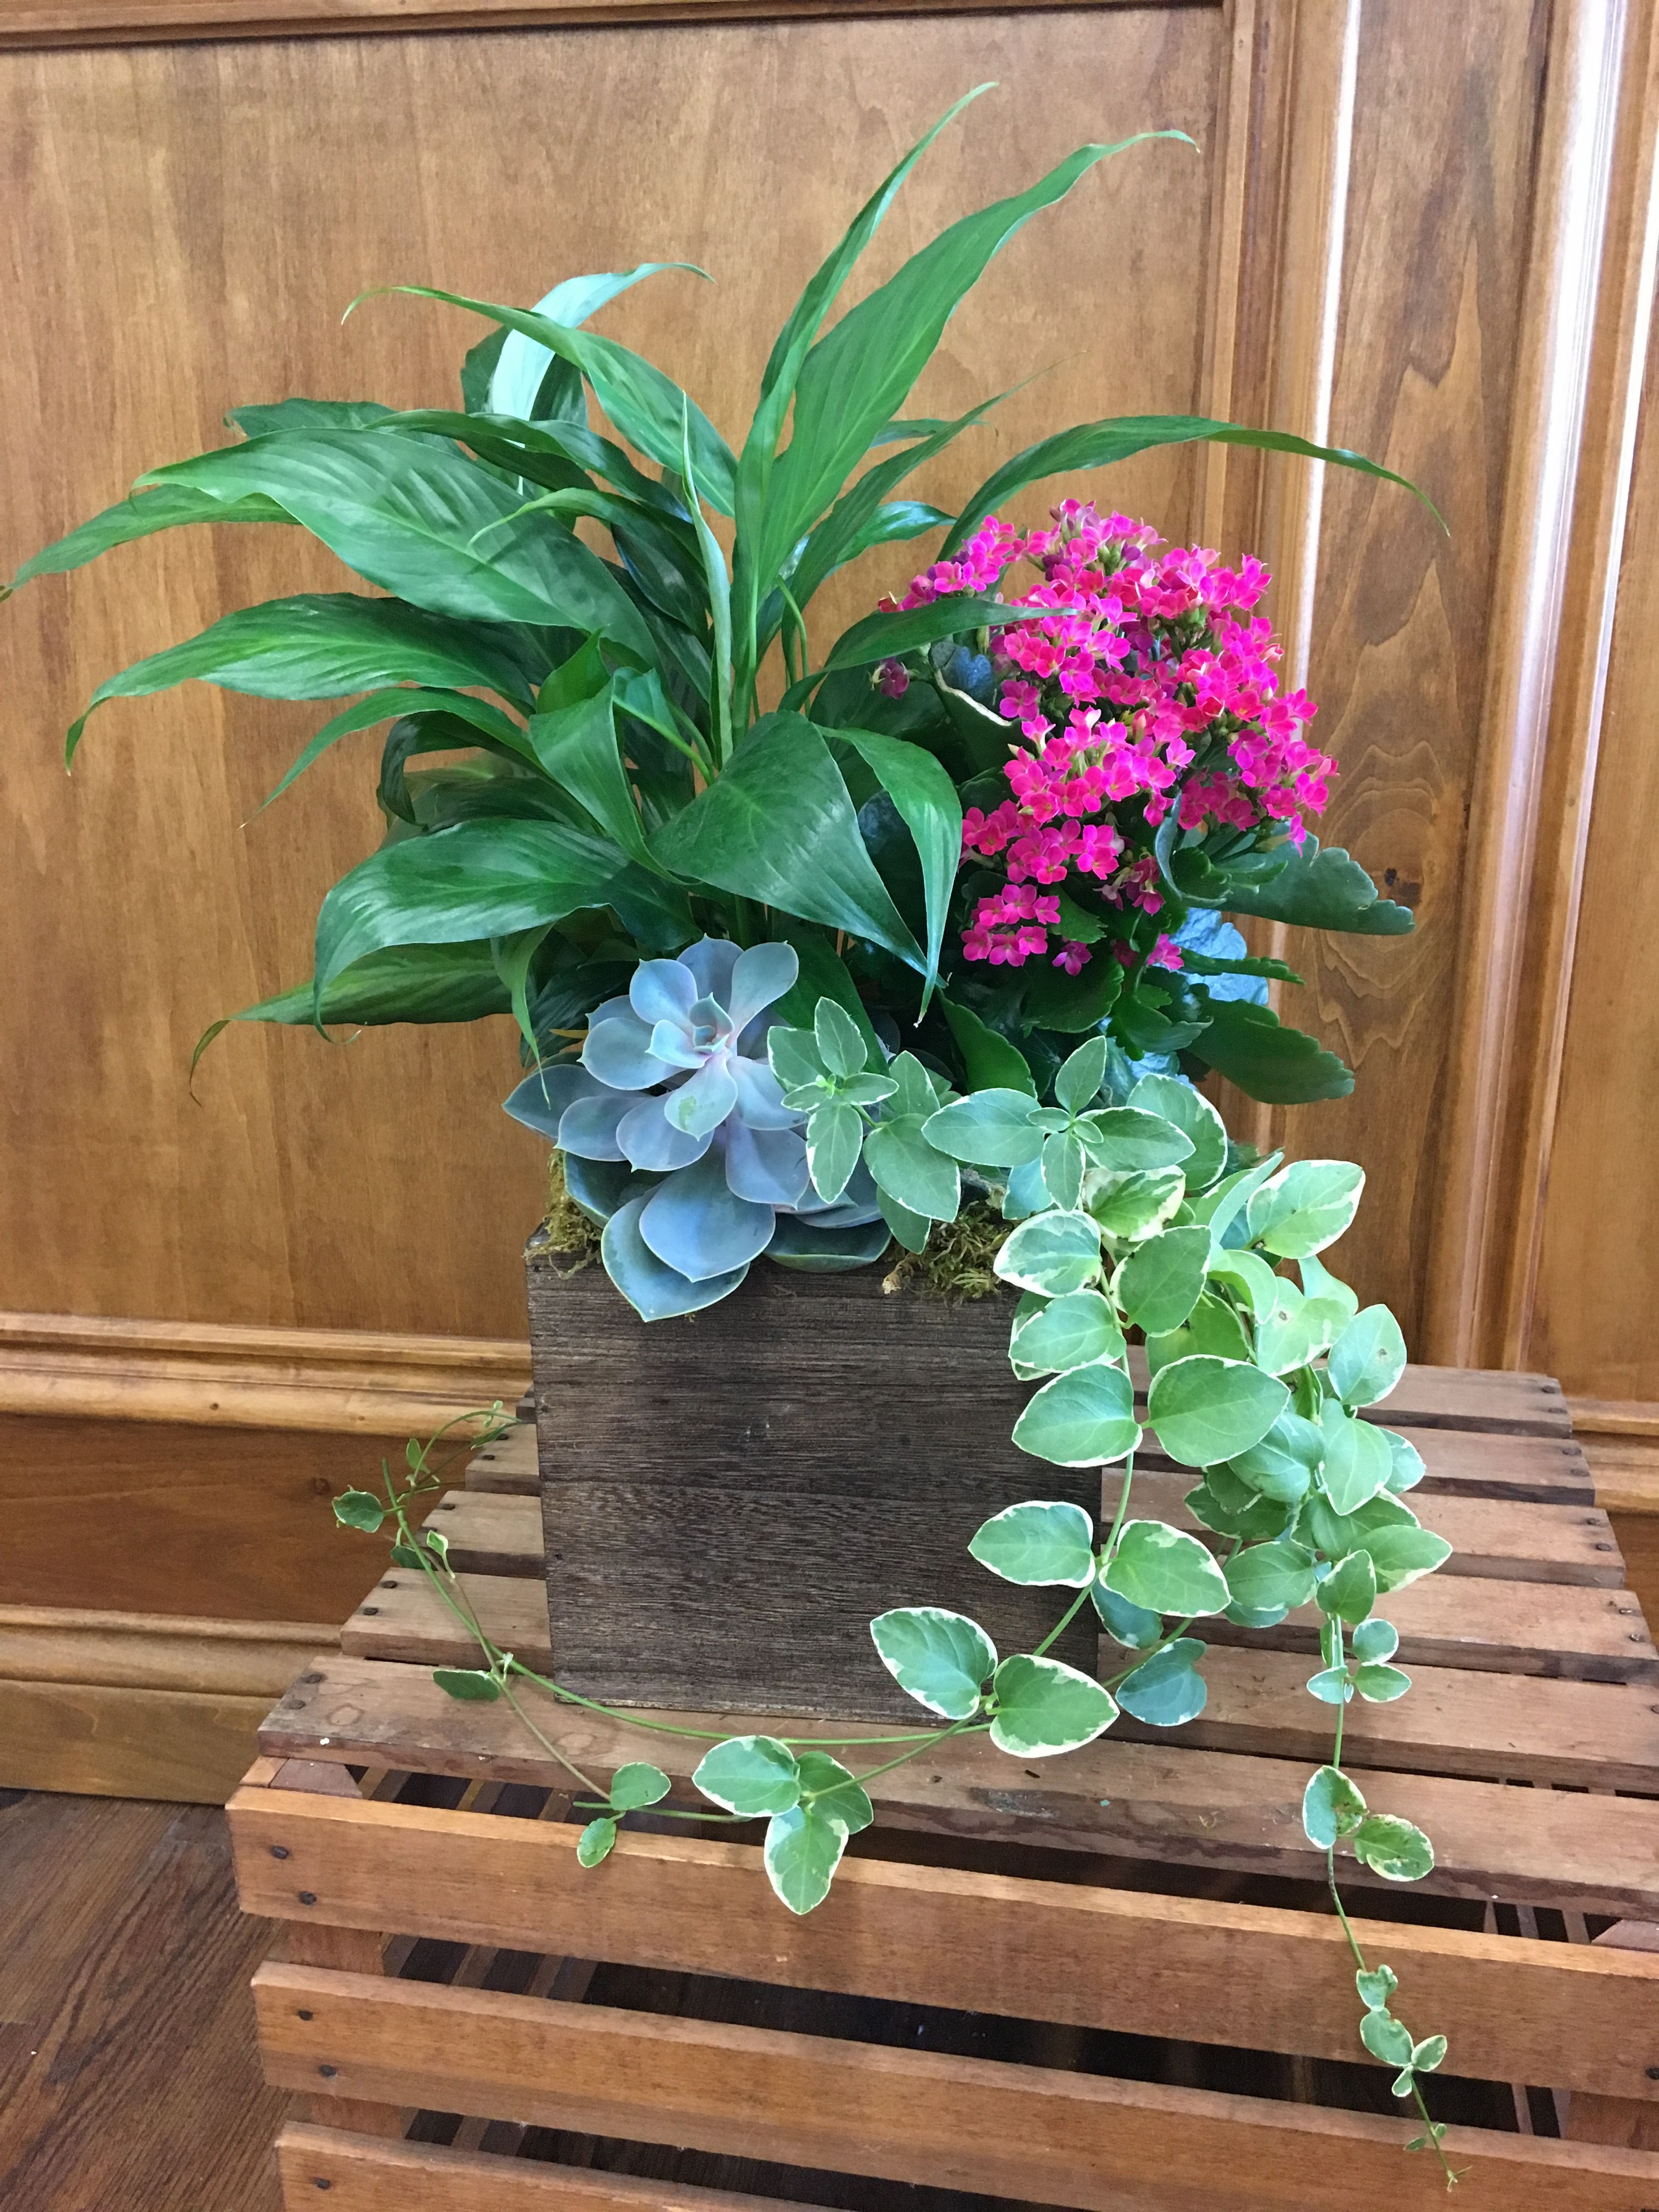 Planter box with succulents, blooming plant & a mix of green plants